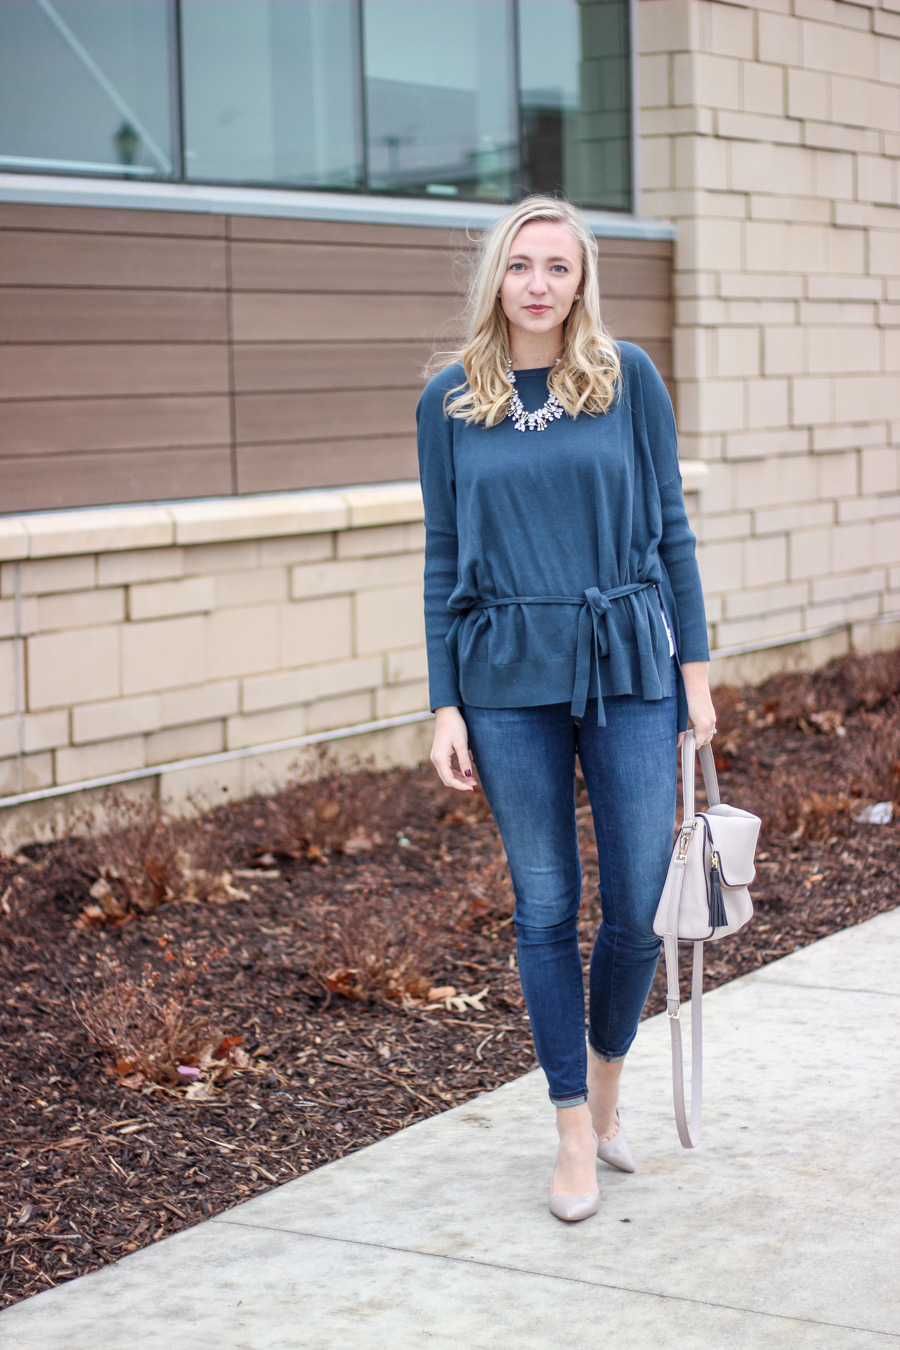 Winter Florals – Dressing for the Cold